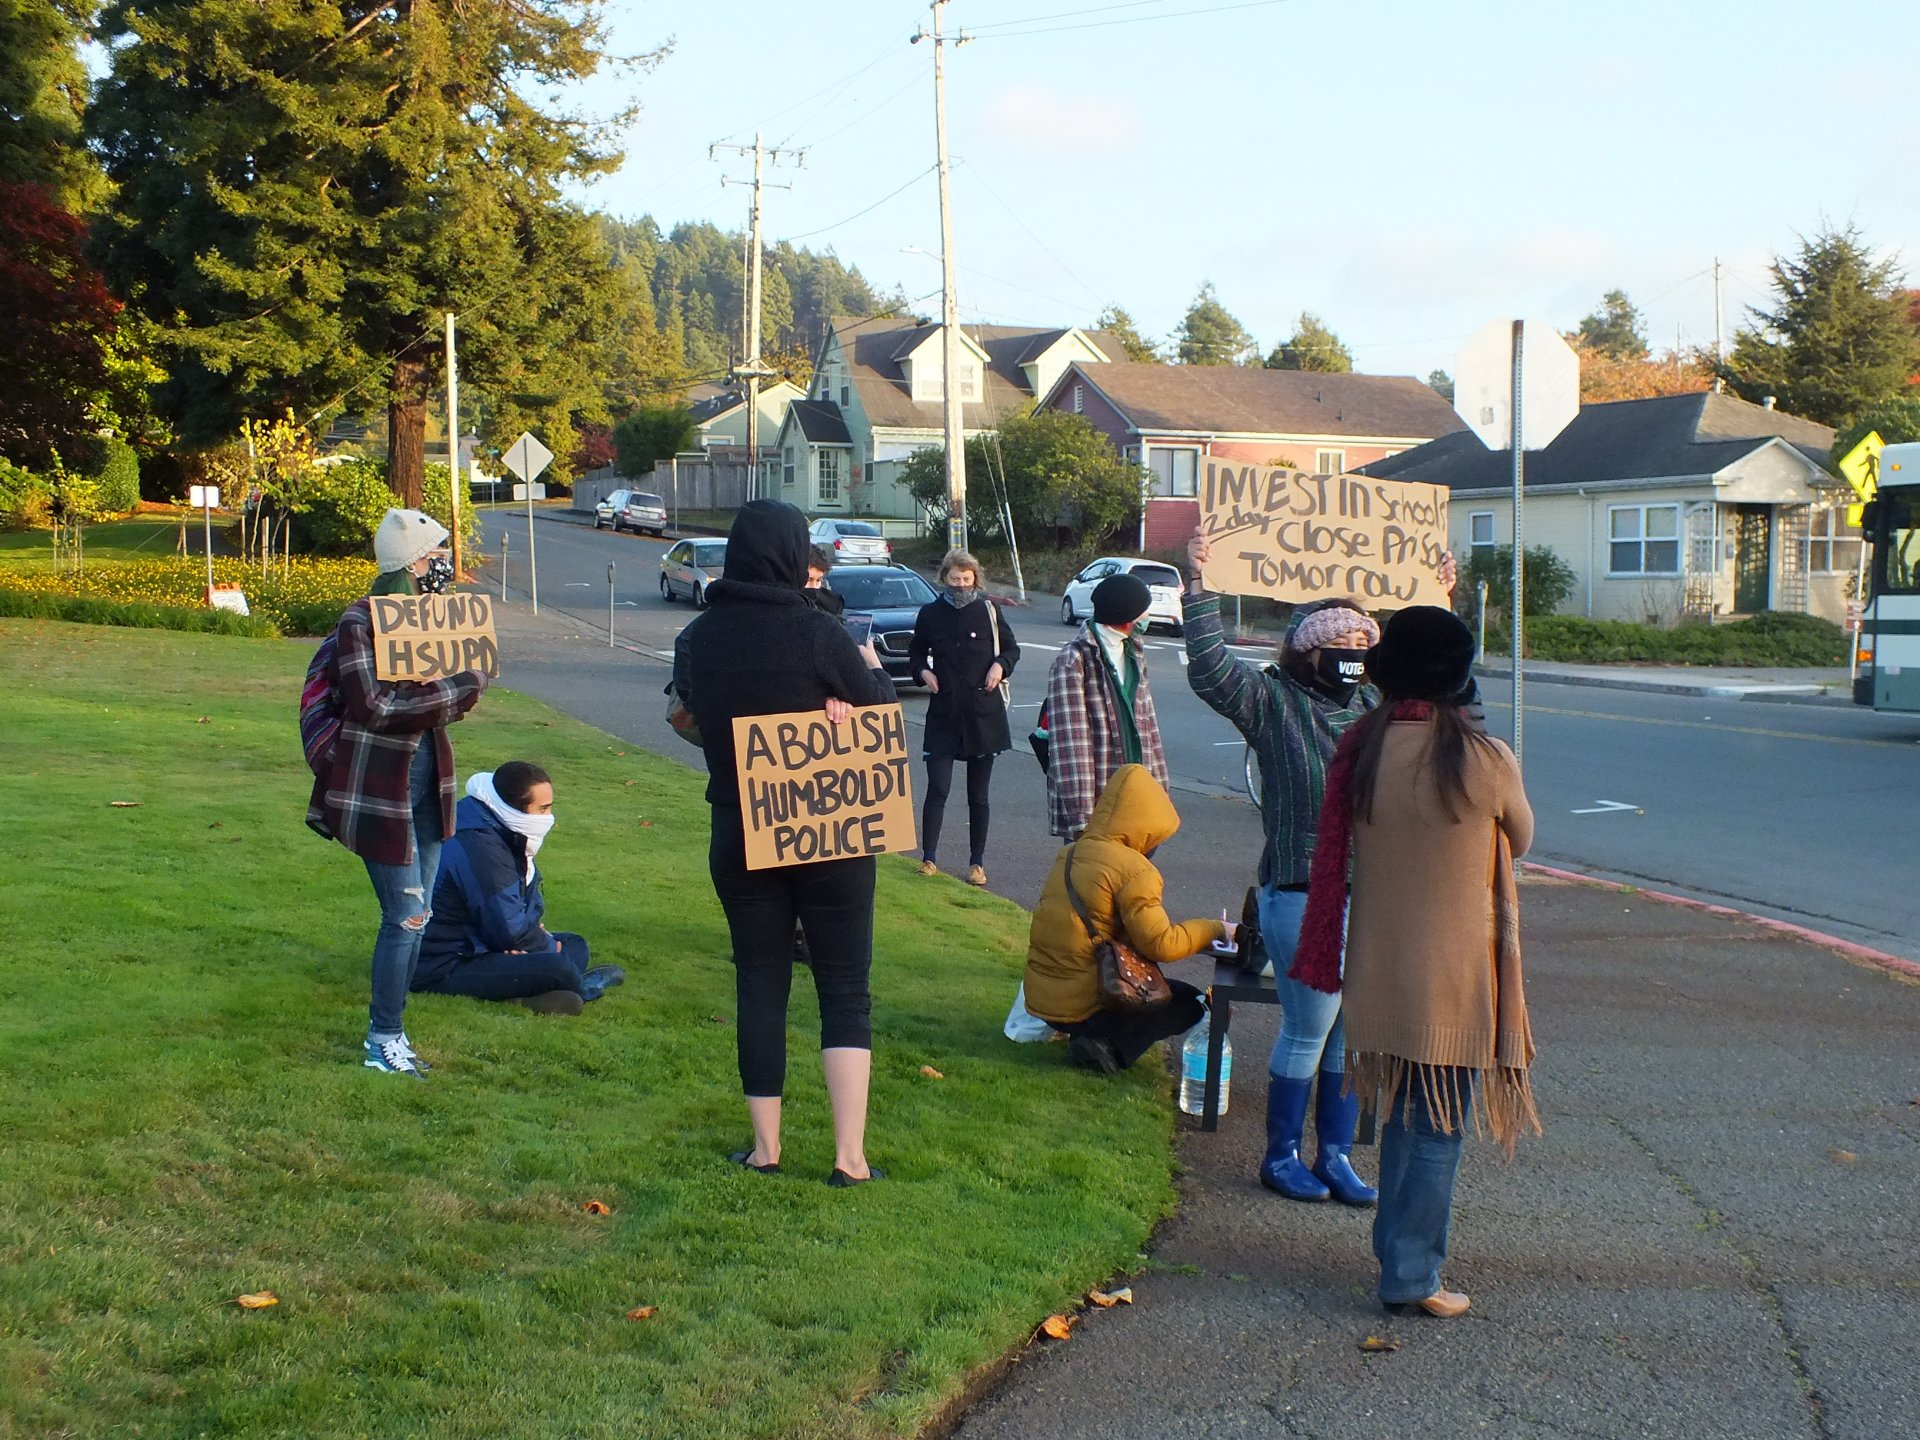 A small group gathered outside Humboldt State University on Nov. 7 to protest the campus police department. Part of a two day event, the crowd held signs and chanted at passing cars, who honked in support. | Photo by Carlos Holguin